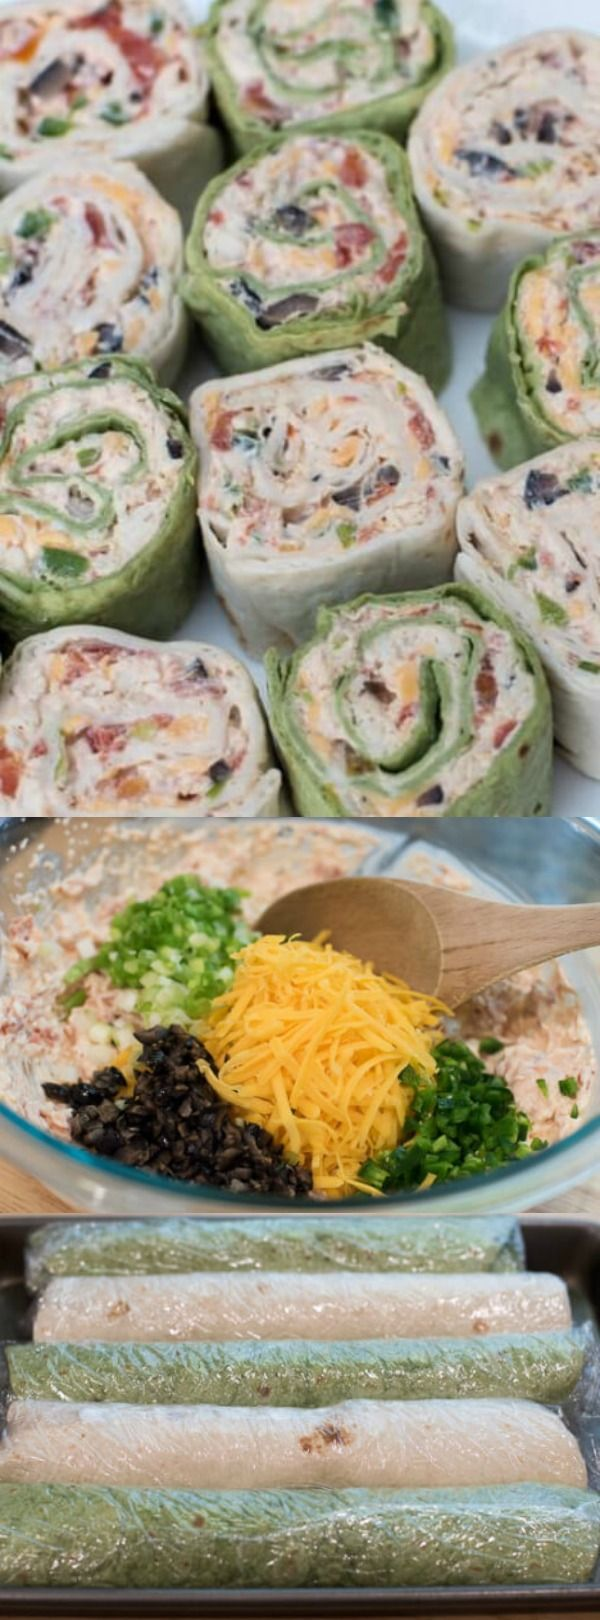 These Southwest Chicken Tortilla Pinwheels from Valerie's Kitchen are a classic party appetizer with the most delicious Southwest twist! You can make these before your party and have them waiting in your refrigerator.